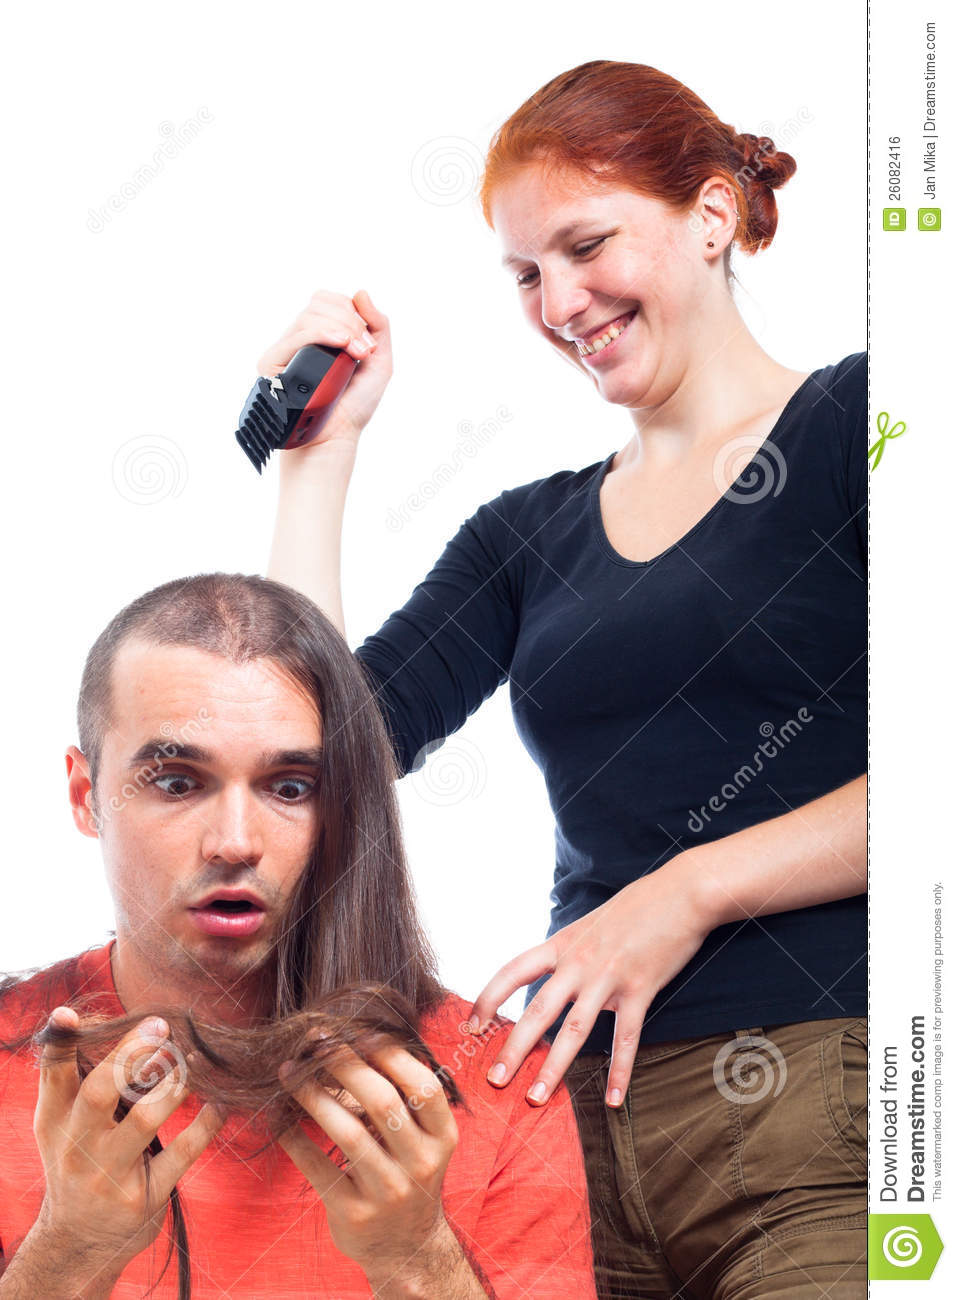 Funny hairdressing stock photo. Image of barber, funny ...